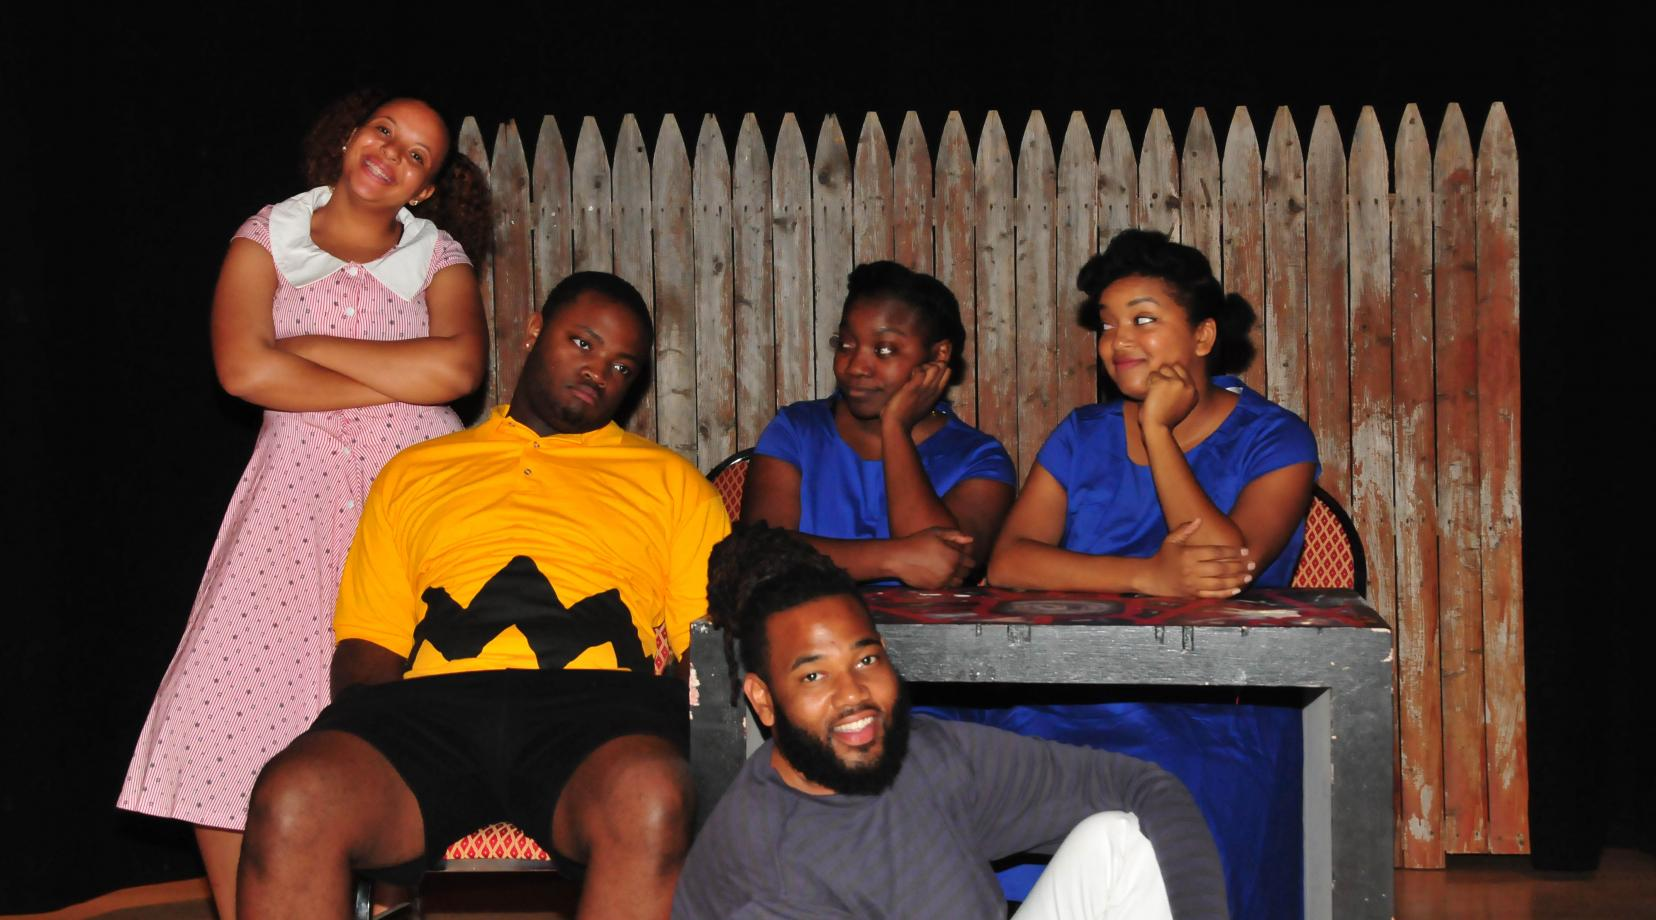 (L-r) Sháe Ross (as Sally), Anthony McIver (Charlie Brown), Jahselan White (Lucy understudy), Marquita Richardson (Lucy) and Tyrone J. Ashley Jr. (Schroeder).